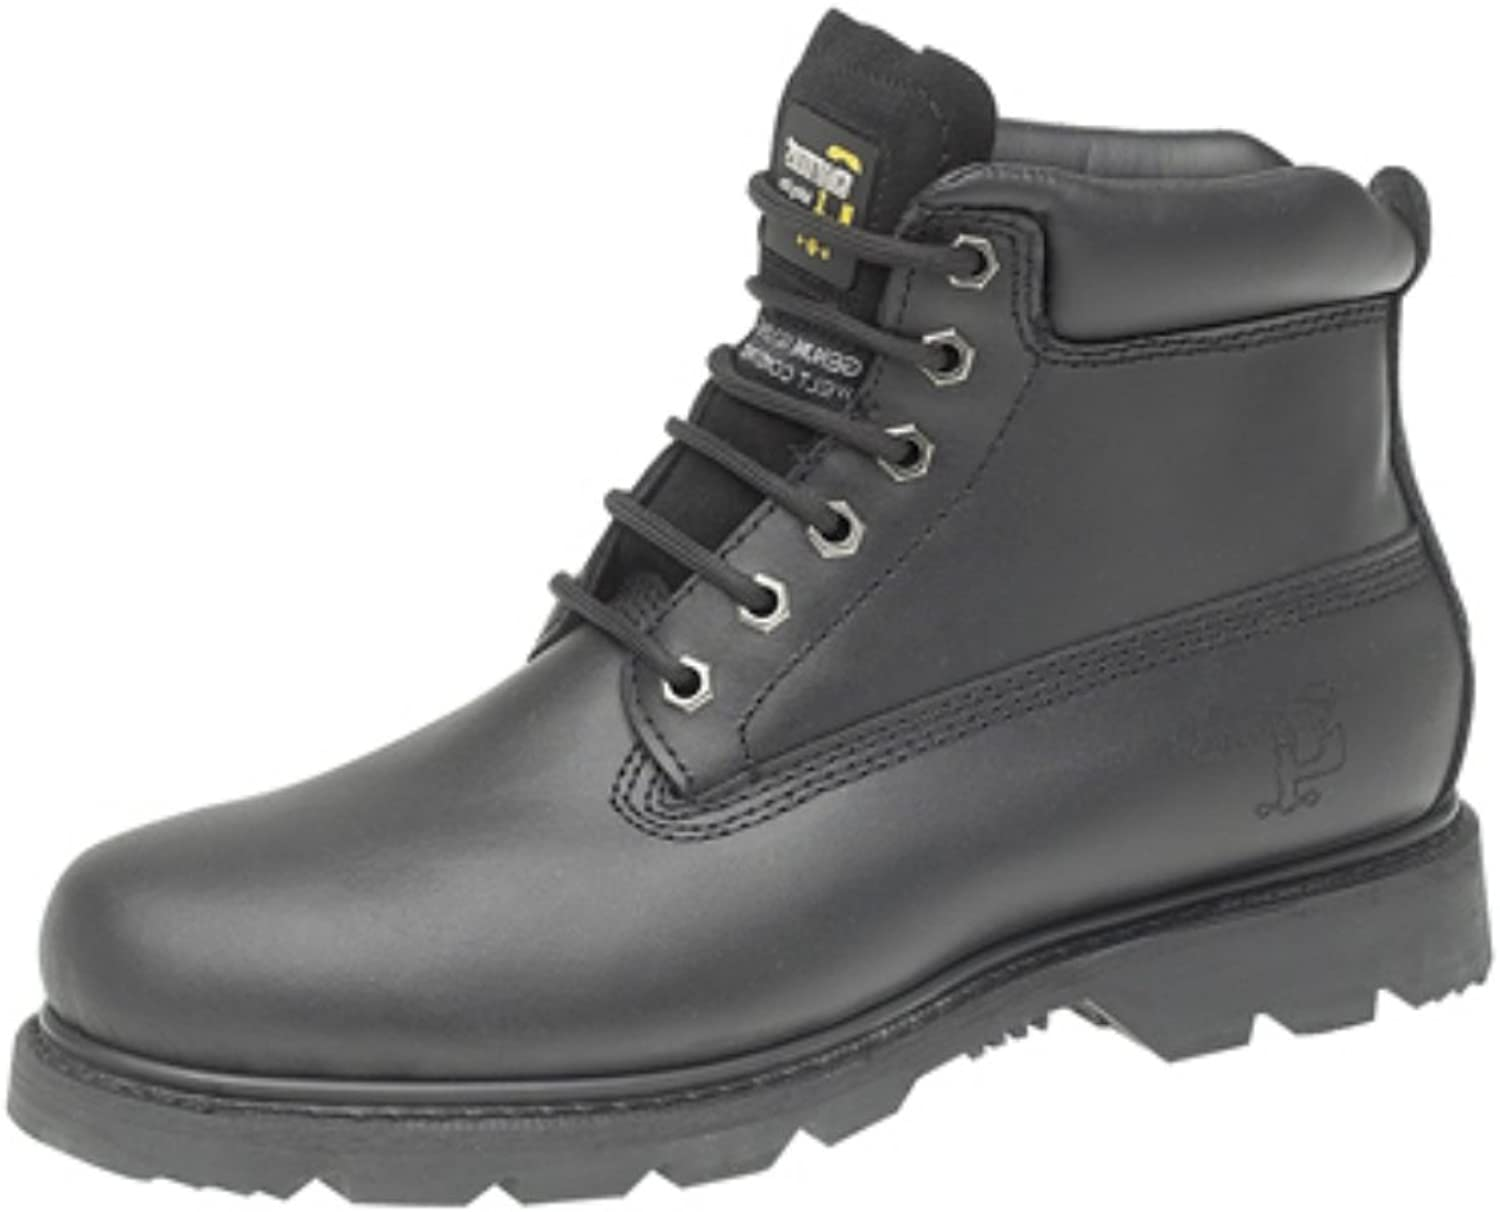 GRAFTERS 6 EYE PADDED WORK BOOT